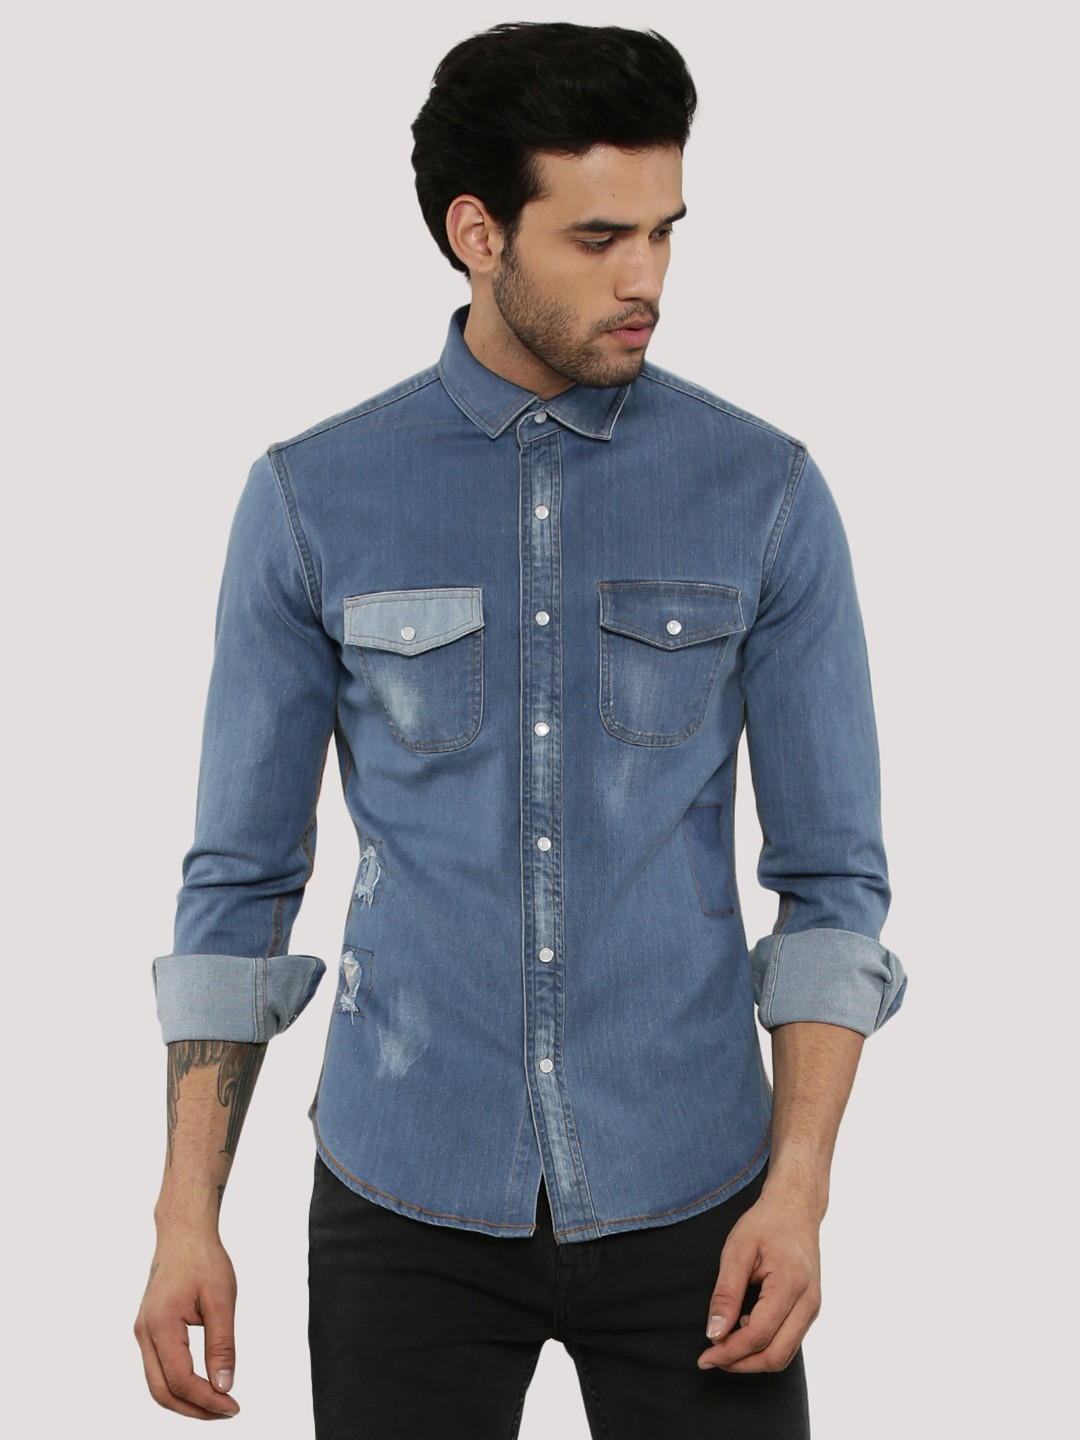 Find great deals on eBay for Mens Denim Shirt in Casual Shirts for Different Occasions. Shop with confidence. Shop huge inventory of Mens Wrangler Denim Shirt, Mens Denim Shirt XL, Mens Vintage Denim Shirt and more in Casual Shirts for Different Occasions on eBay. Find great deals and get .